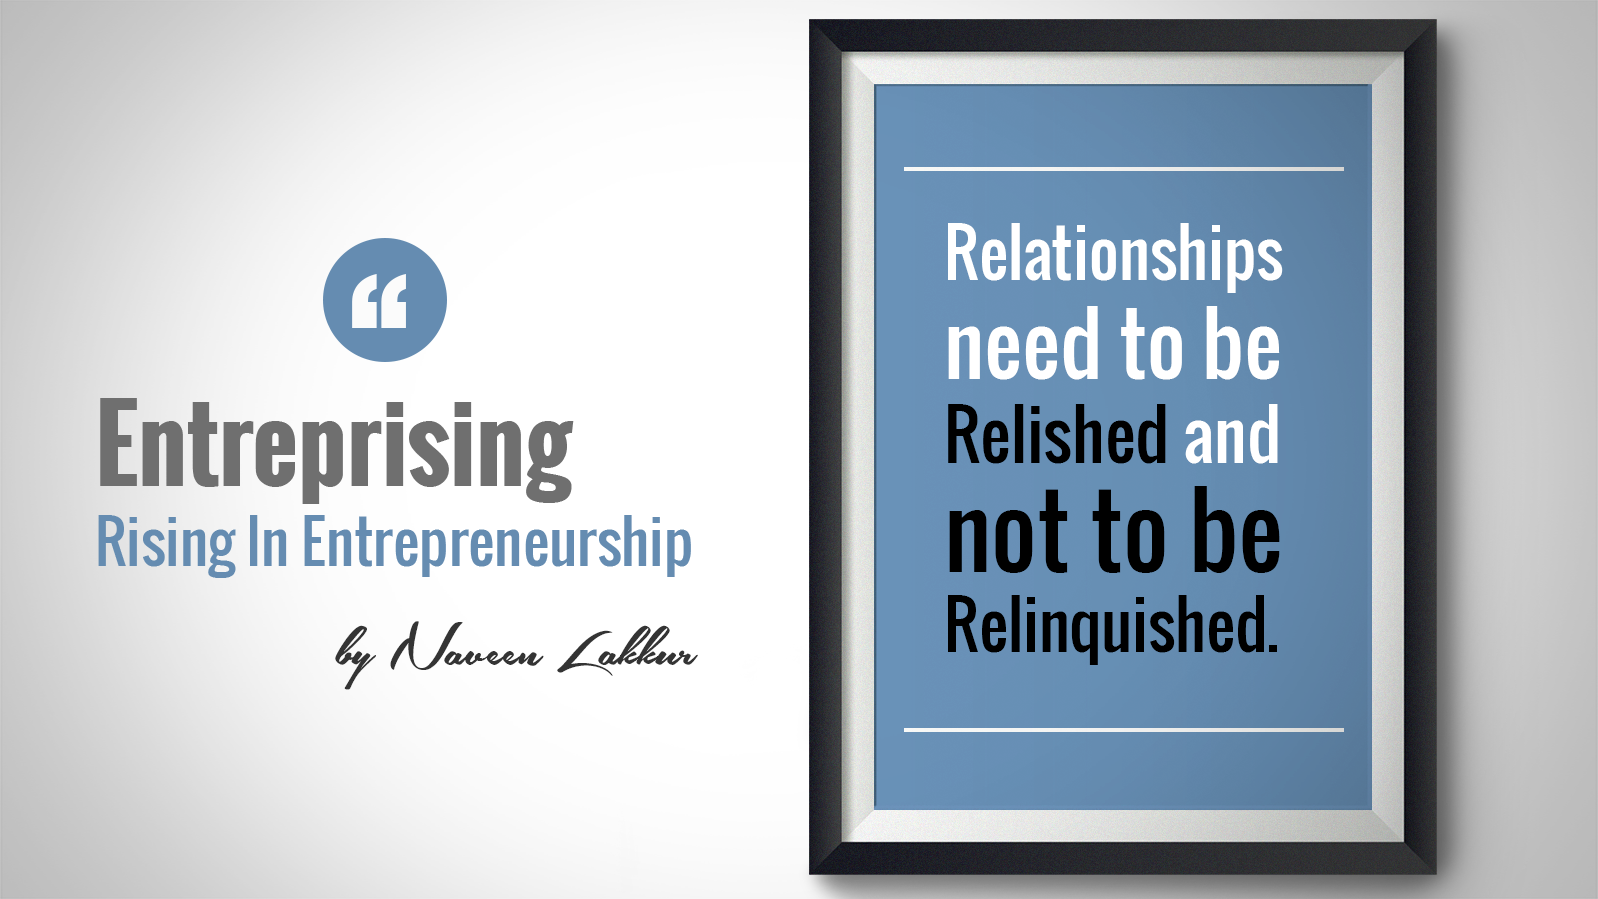 RELISH YOUR RELATIONSHIPS